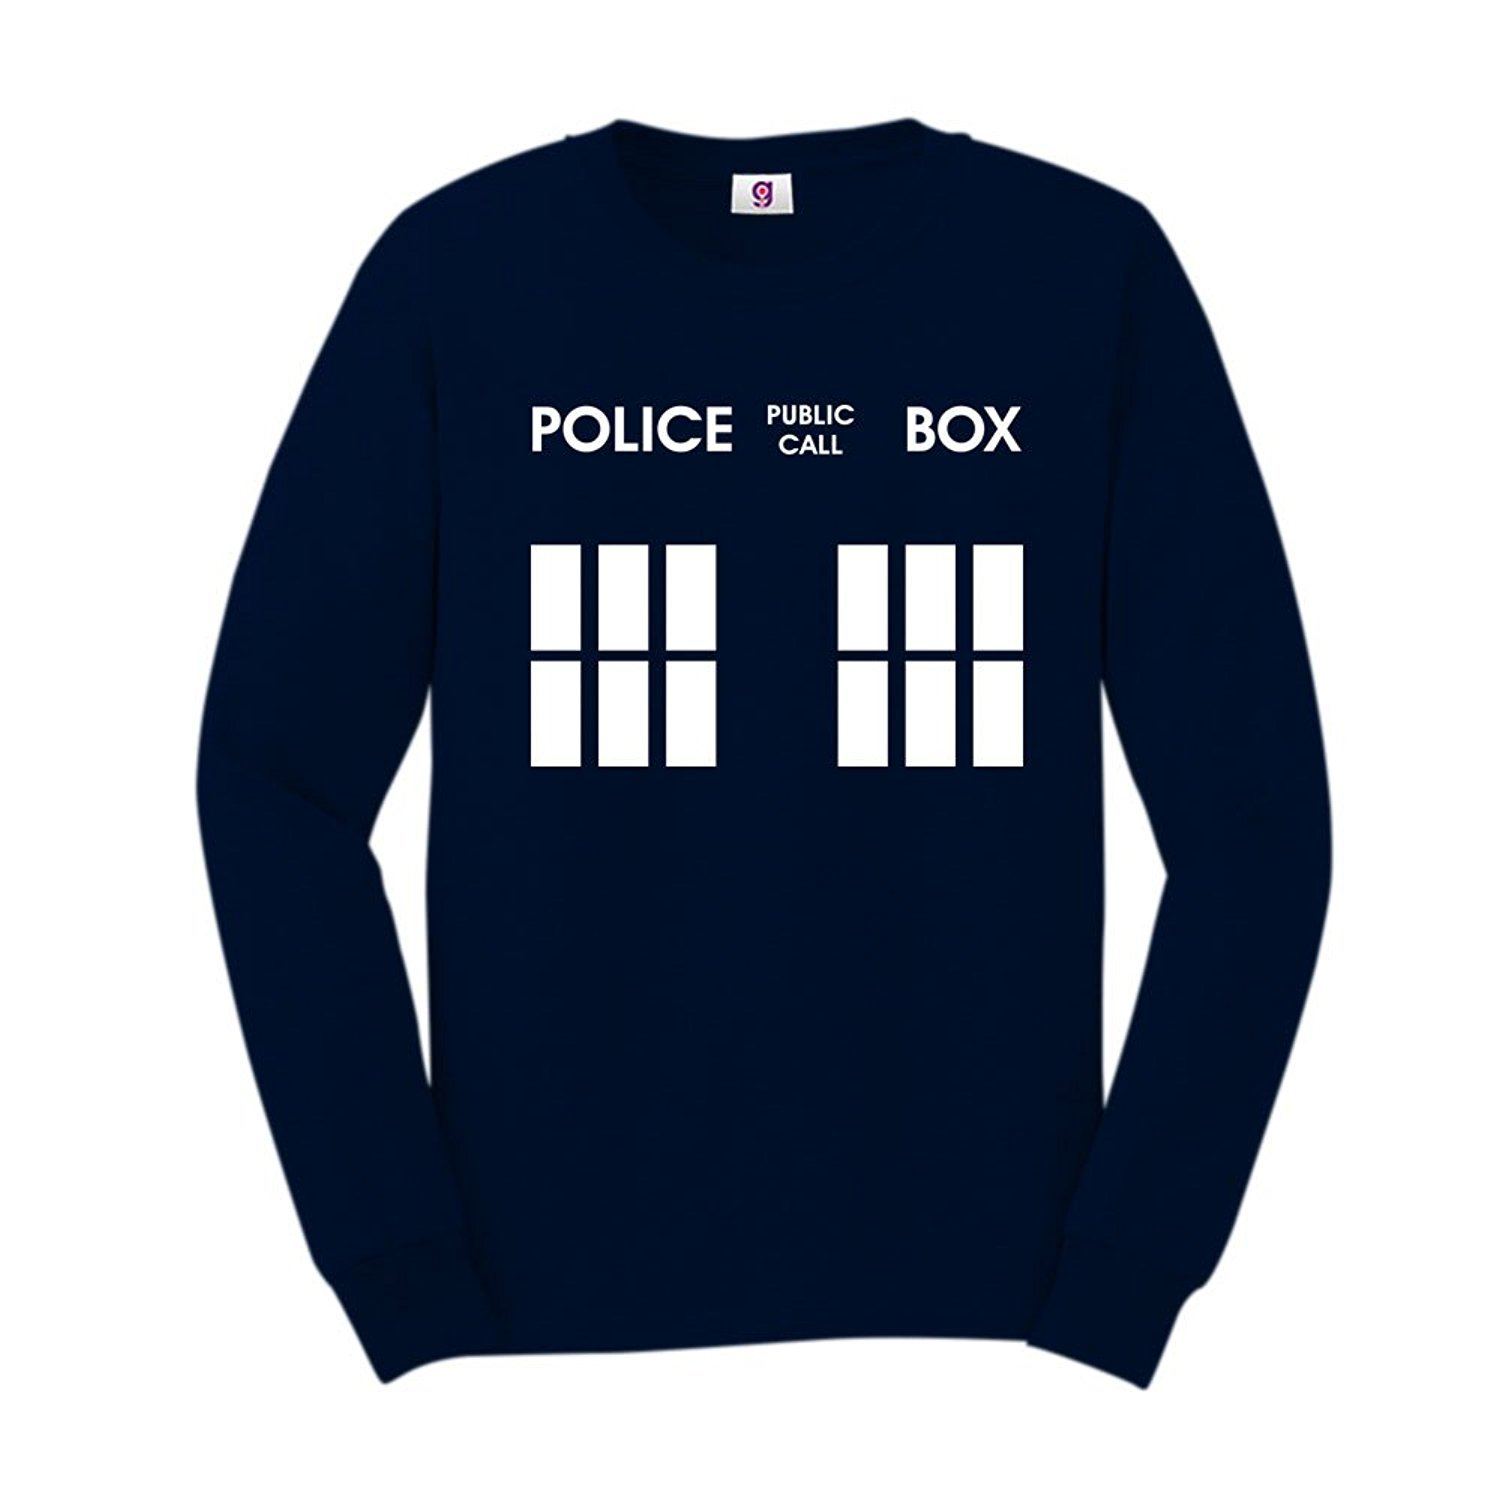 Inspired Dr and The Who Public Police Call Box Tardis Sweatshirt